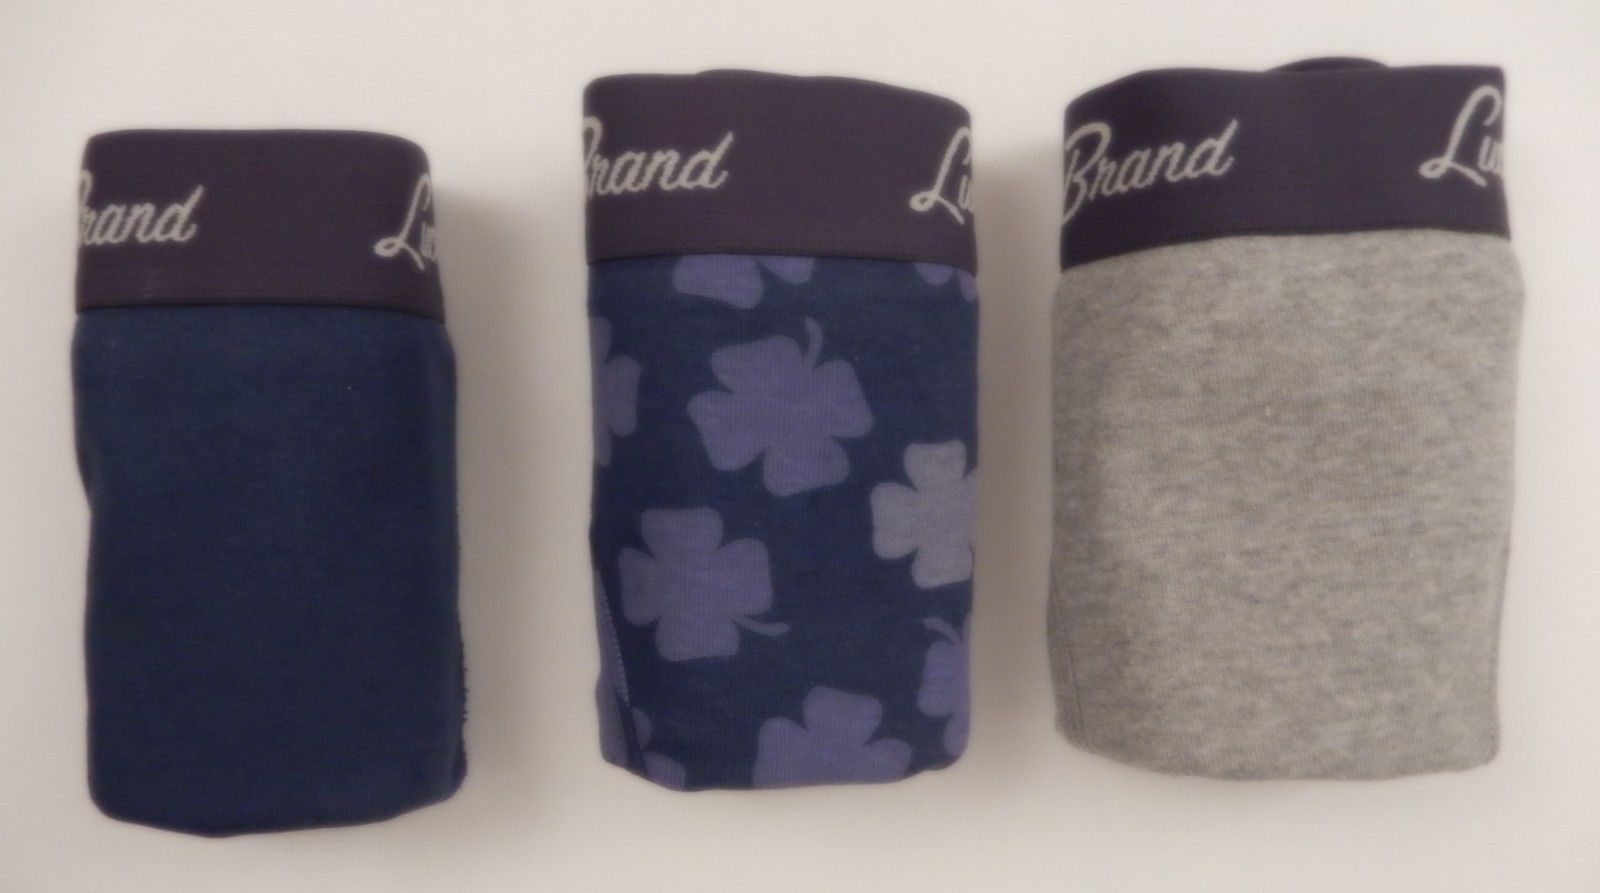 3 LUCKY BRAND MEN'S COTTON BOXER BRIEFS BLUE GRAY - SIZES: S M L XL IN GIFT BOX